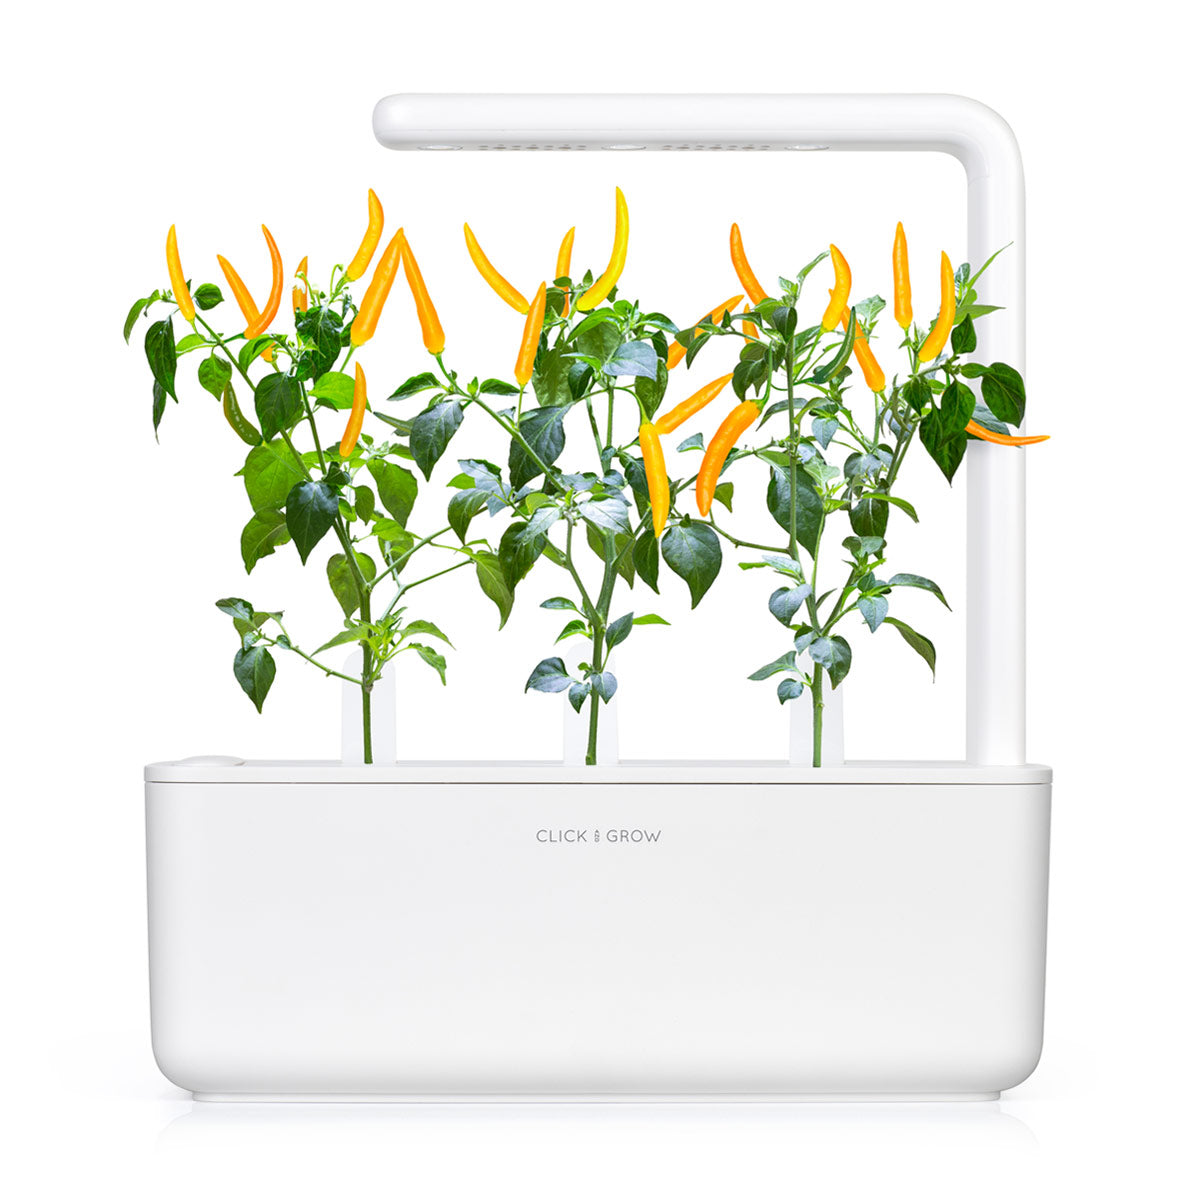 Chili Pepper (Capsicum annuum) refill - Click & Grow indoor garden